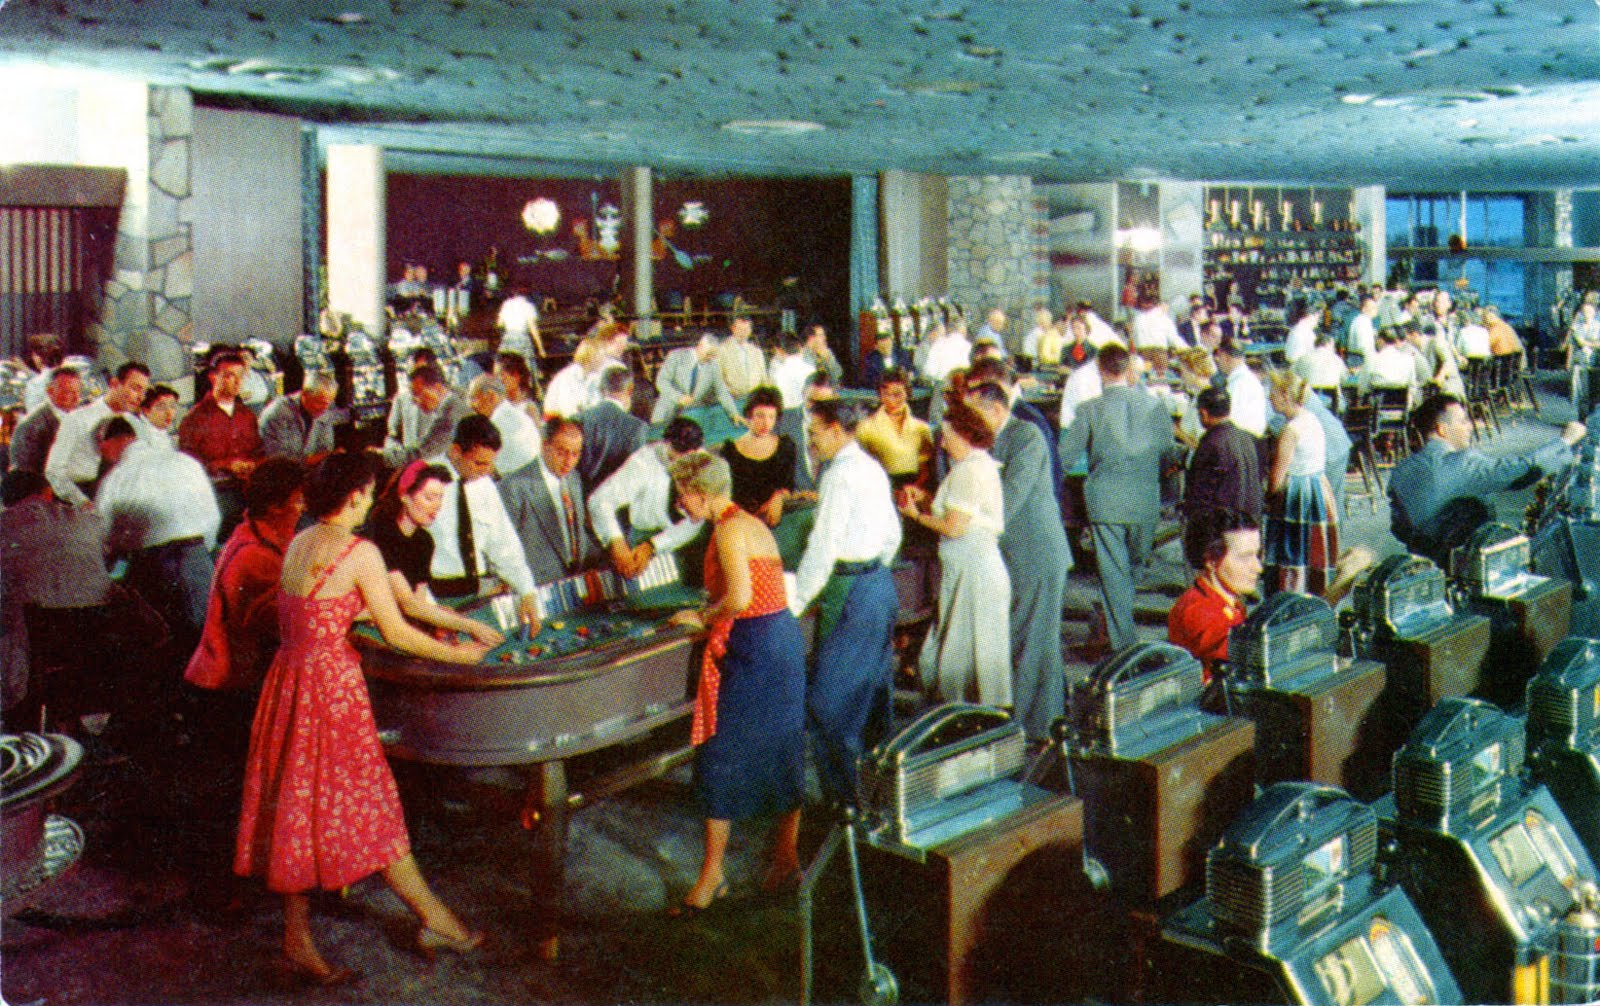 1950s gambling noth carolina casino